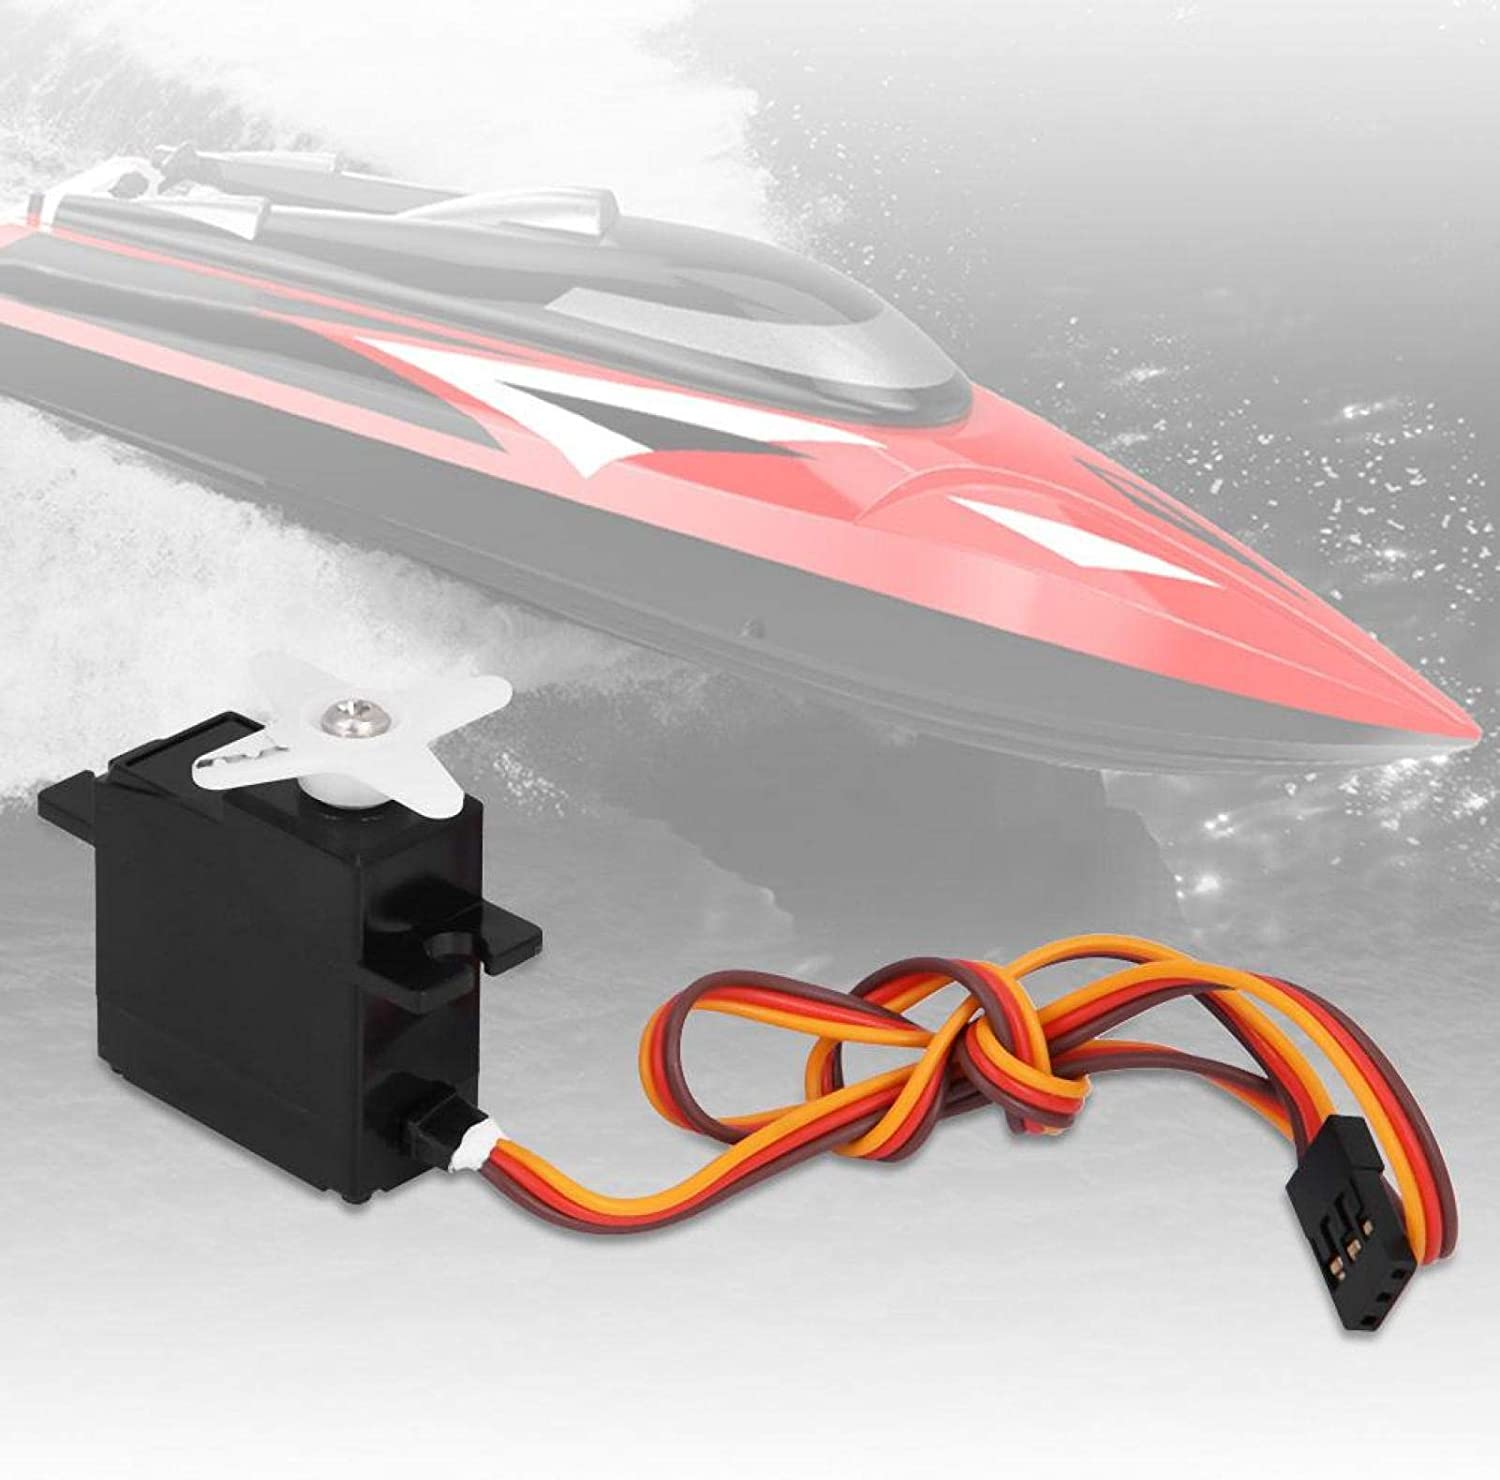 Wltoys Swing Arm Car Steering Engine Micro Servo Kit Servo Accessory,for FT012 Brushless Remote Control RC Boat